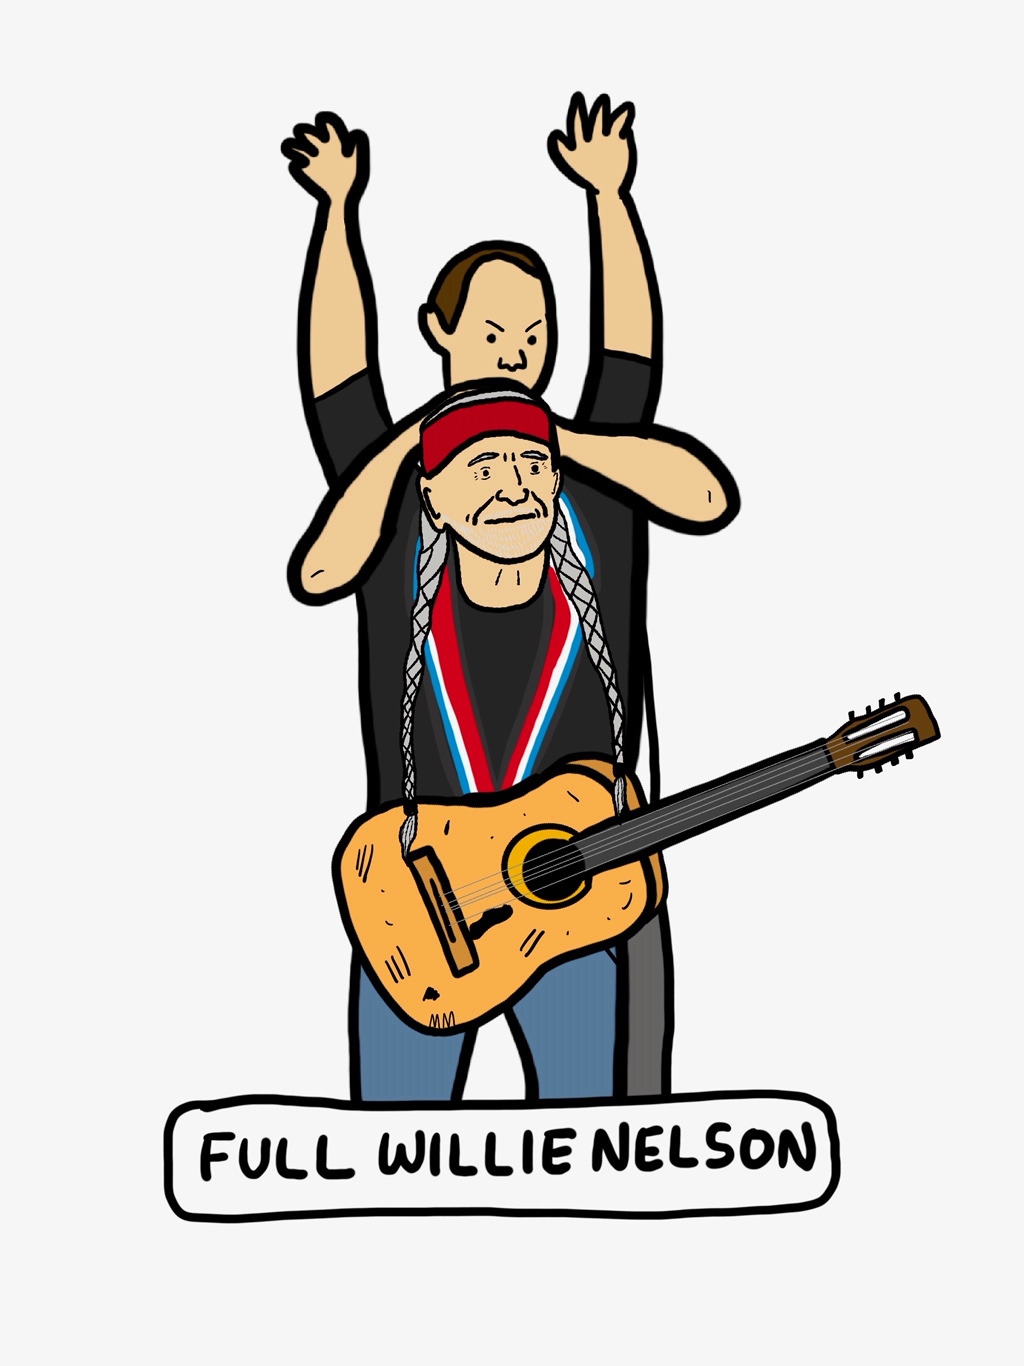 Full Willie Nelson